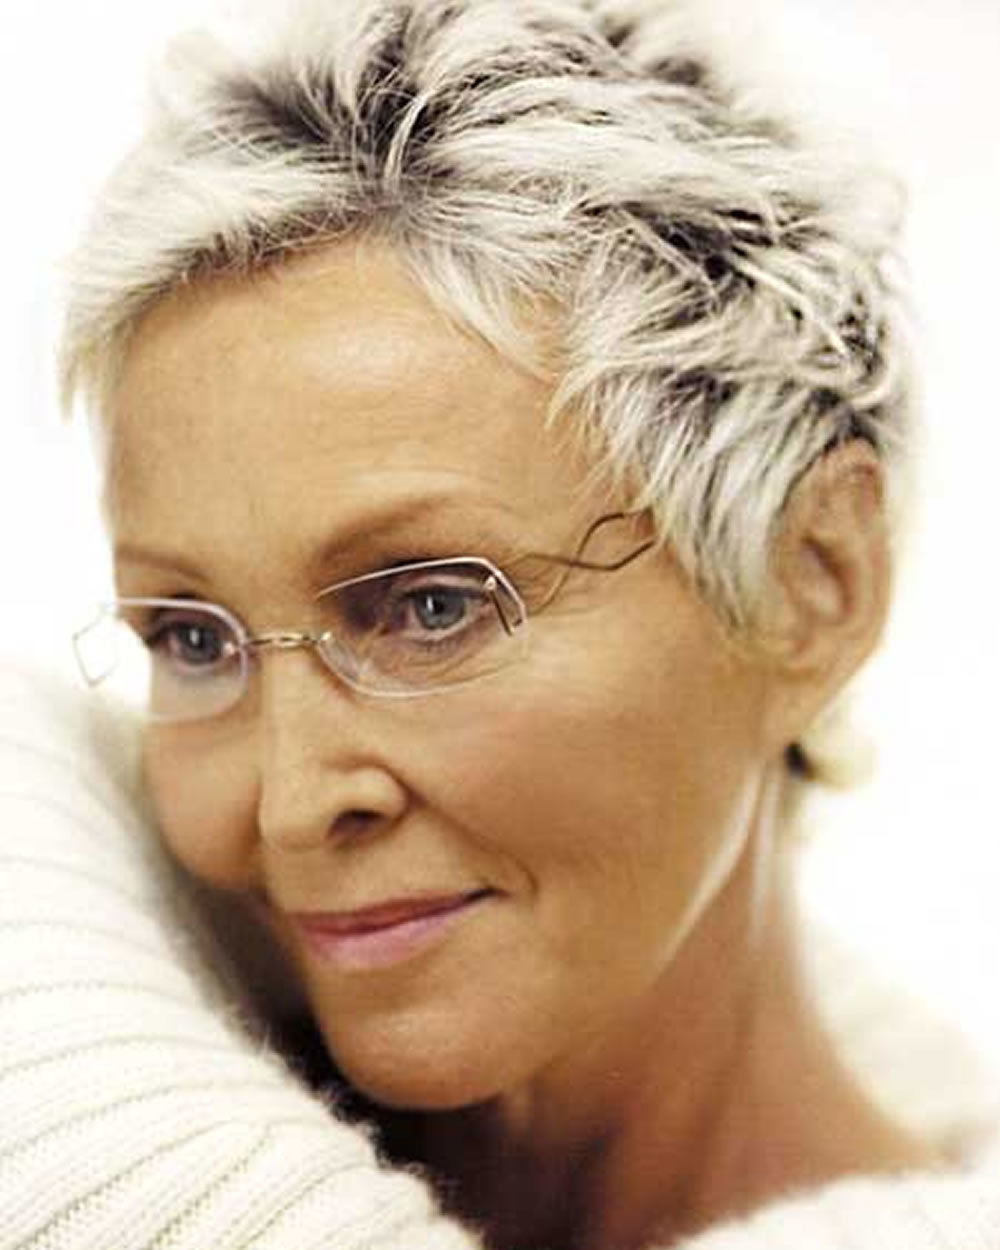 old lyme single women over 50 Ourtimecom is designed for 50+ dating, pen pals and to bring older singles together join ourtimecom and meet new singles for 50+ dating ourtimecom is a niche, 50+ dating service for single older women and single older men.